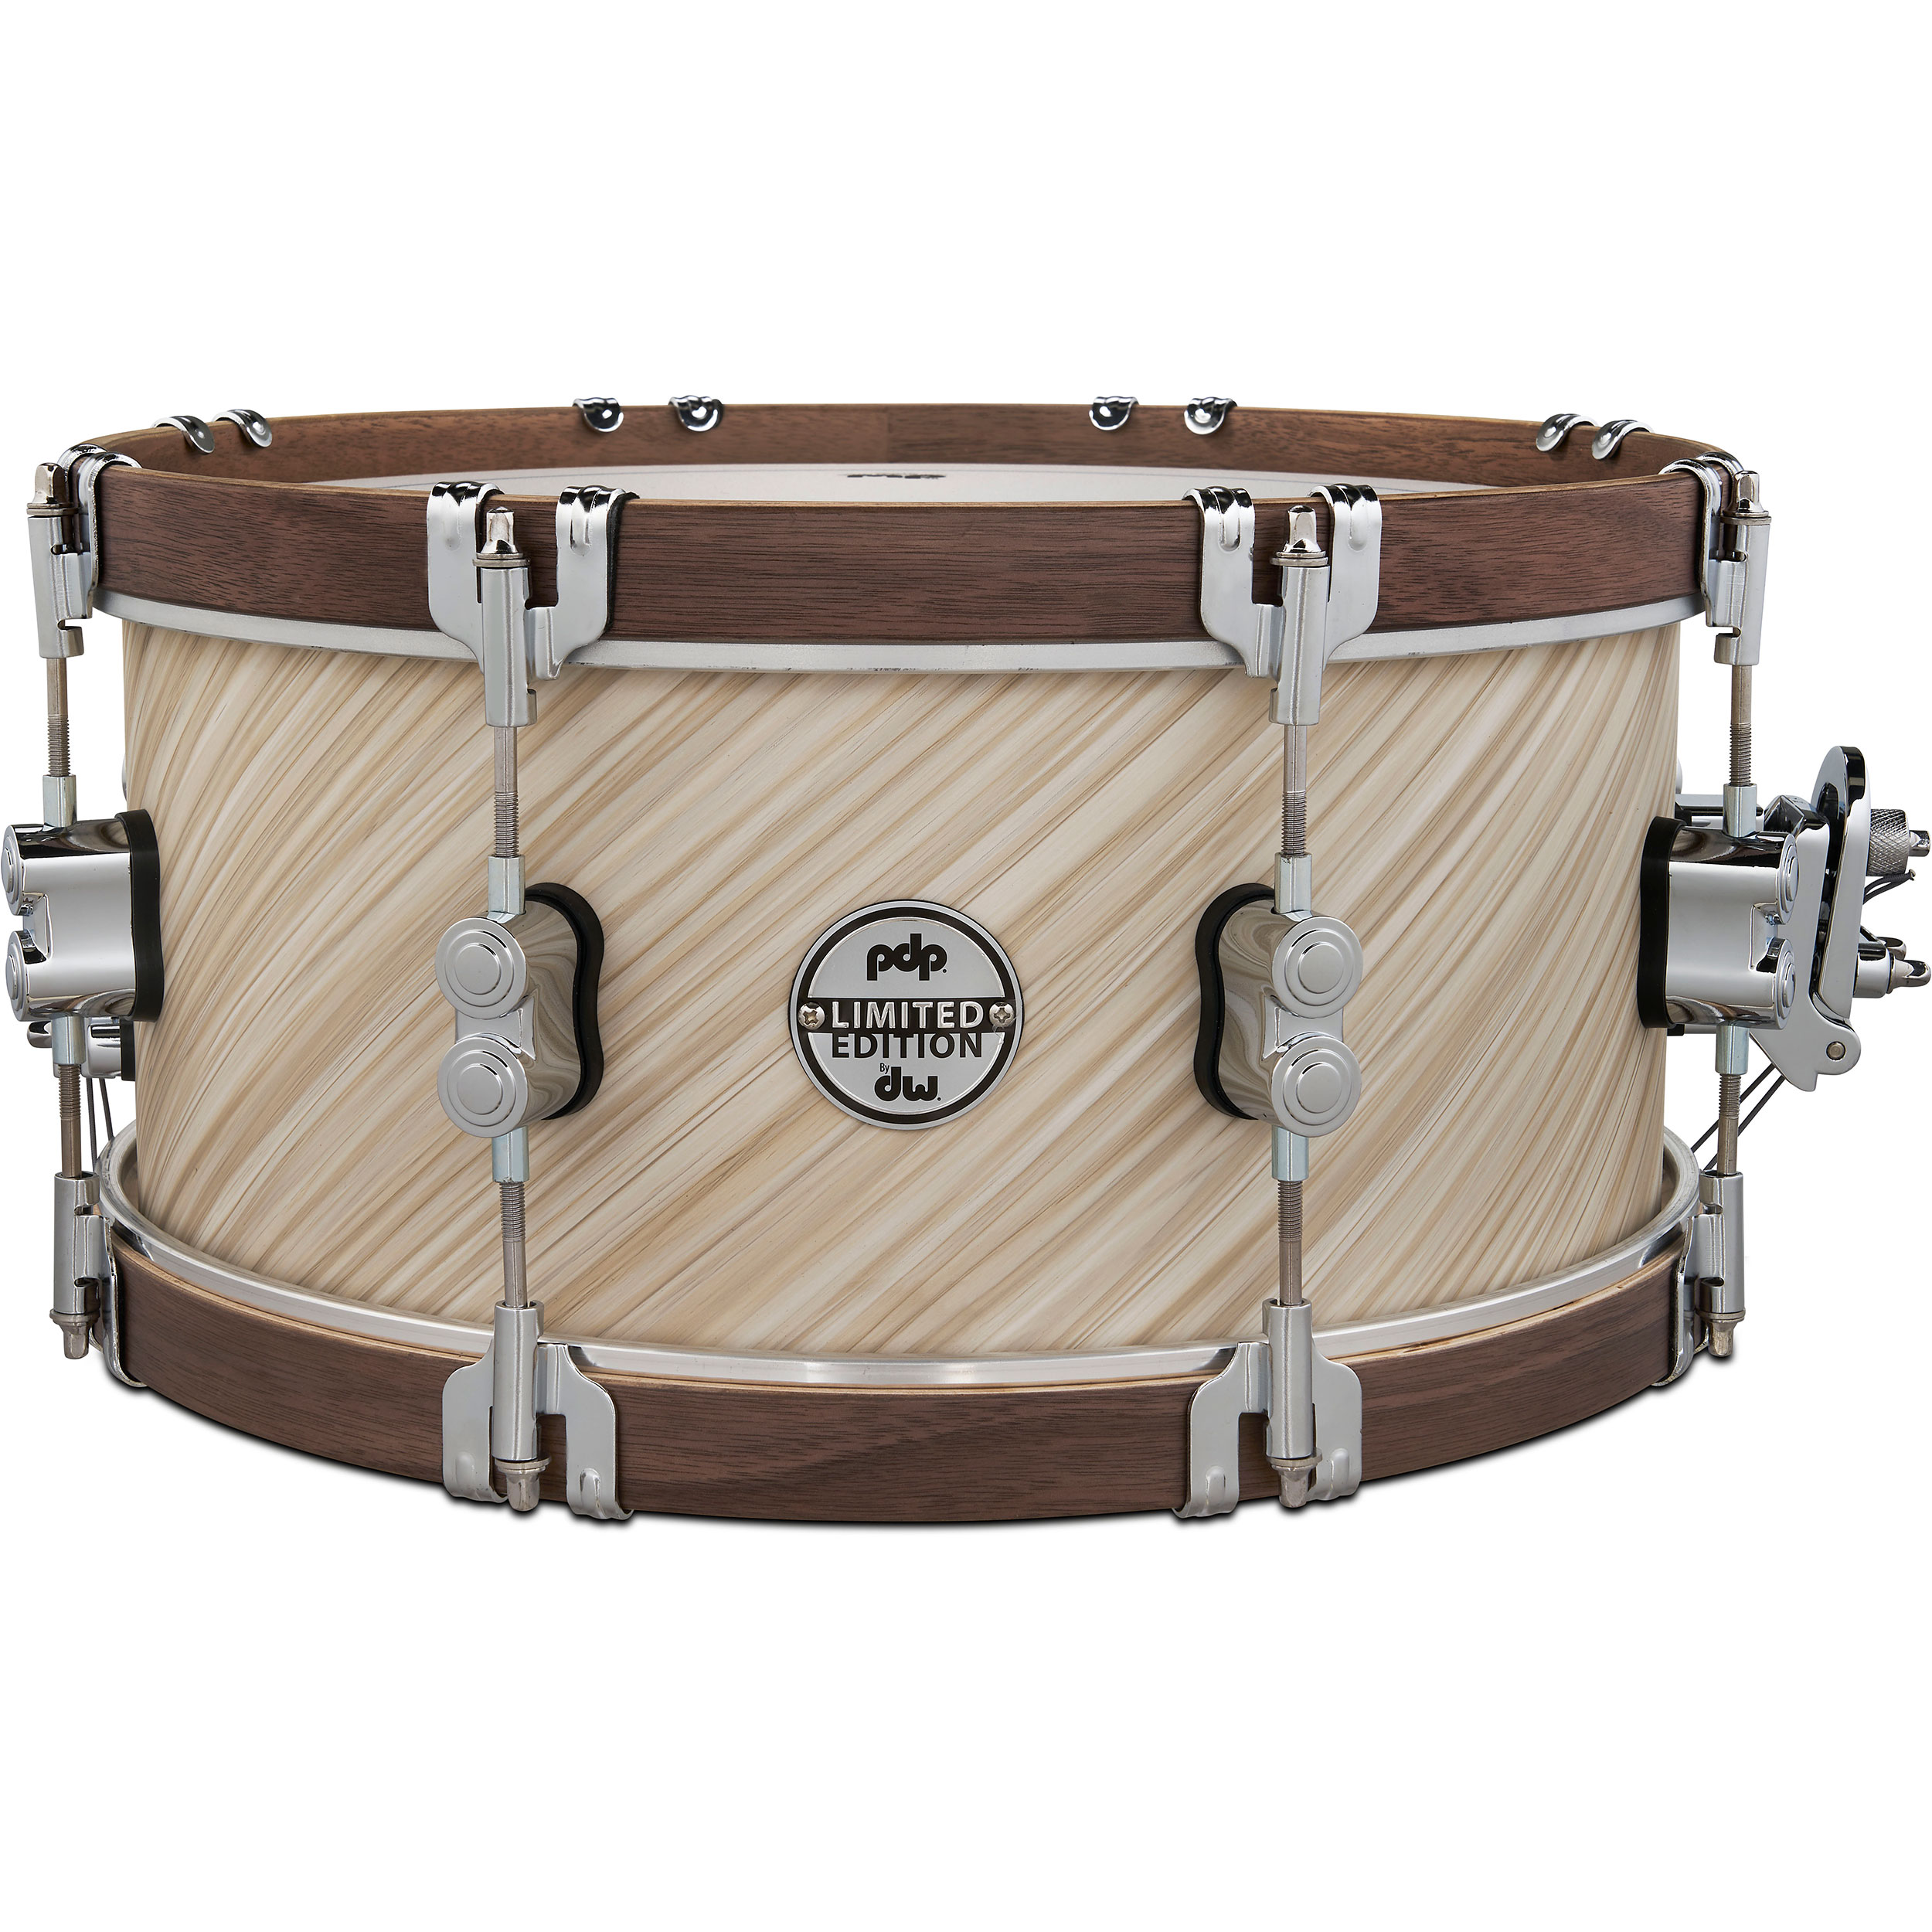 """PDP 6.5"""" x 14"""" Limited Edition Snare Drum in Twisted Ivory with Walnut Hoops"""